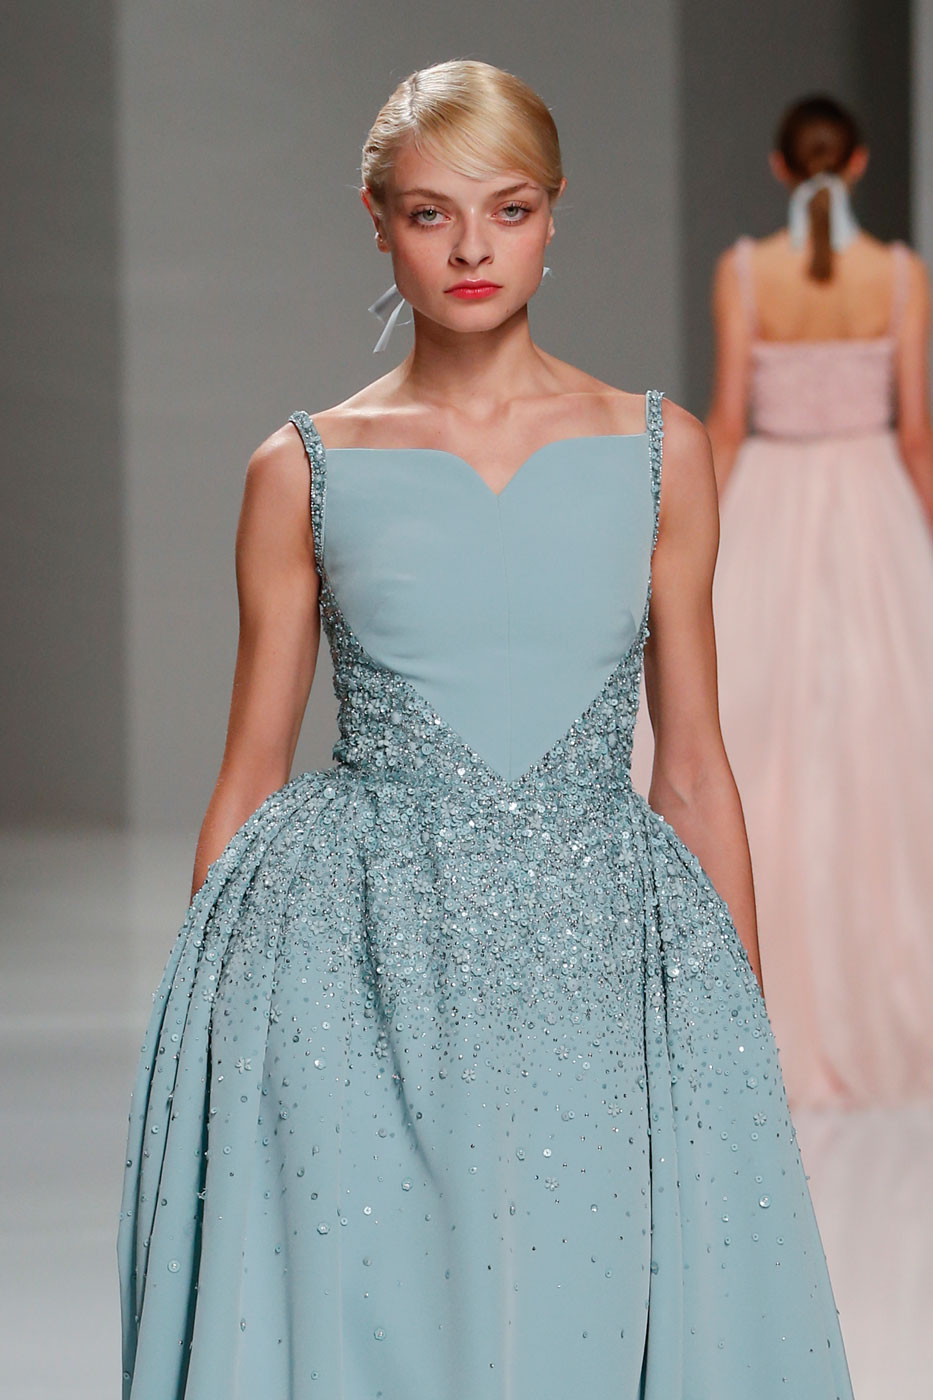 Georges-Hobeika-fashion-runway-show-haute-couture-paris-spring-2015-the-impression-46